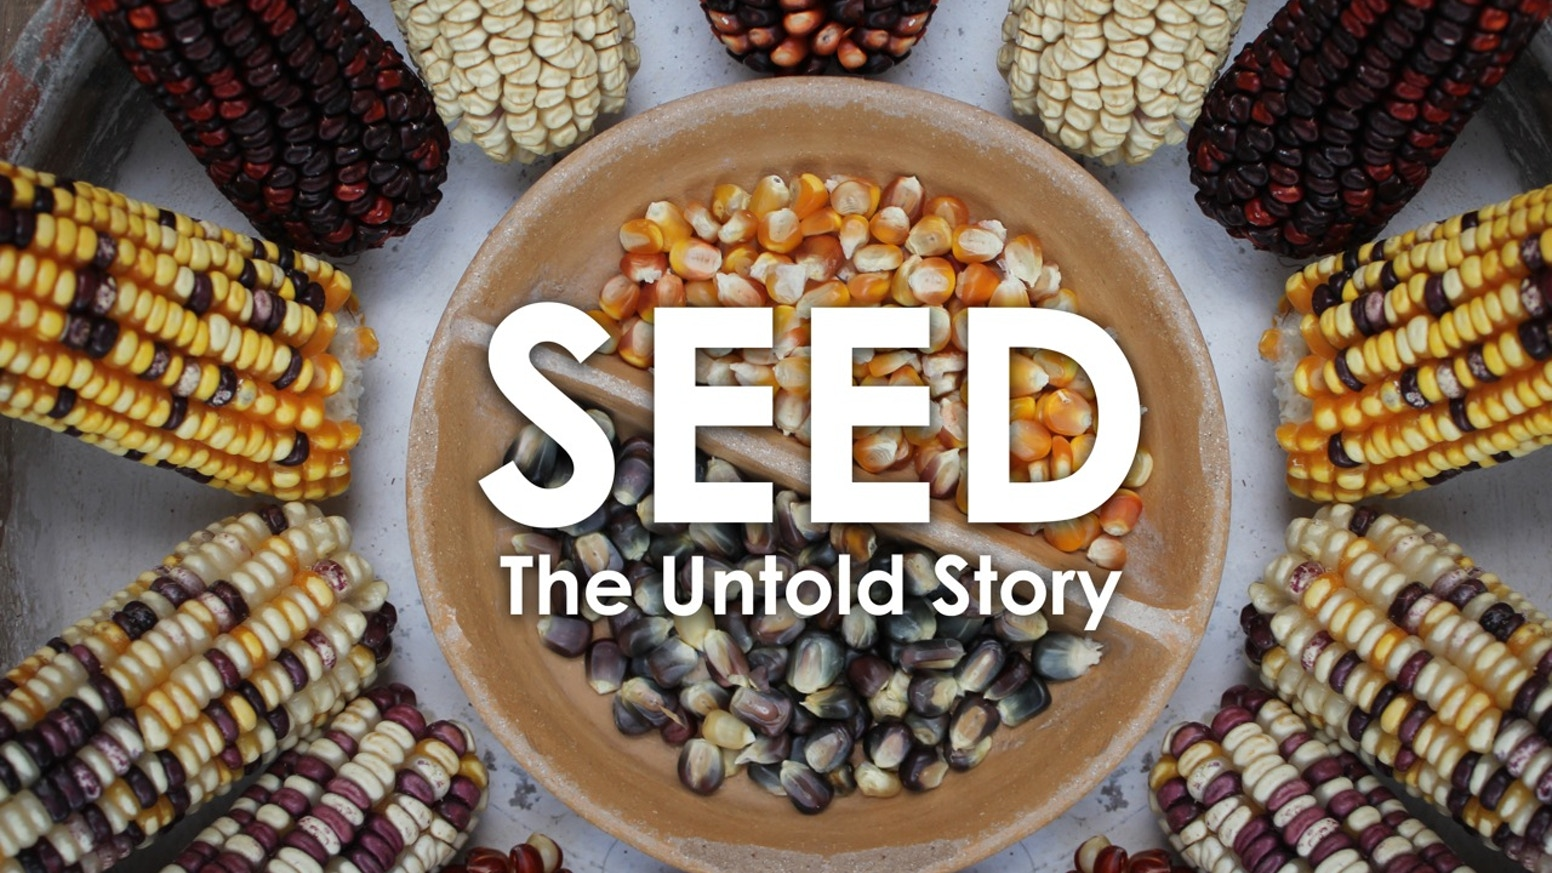 An inspiring documentary that unearths the powerful story of seeds. From the creators of QUEEN OF THE SUN and THE REAL DIRT ON FARMER JOHN.